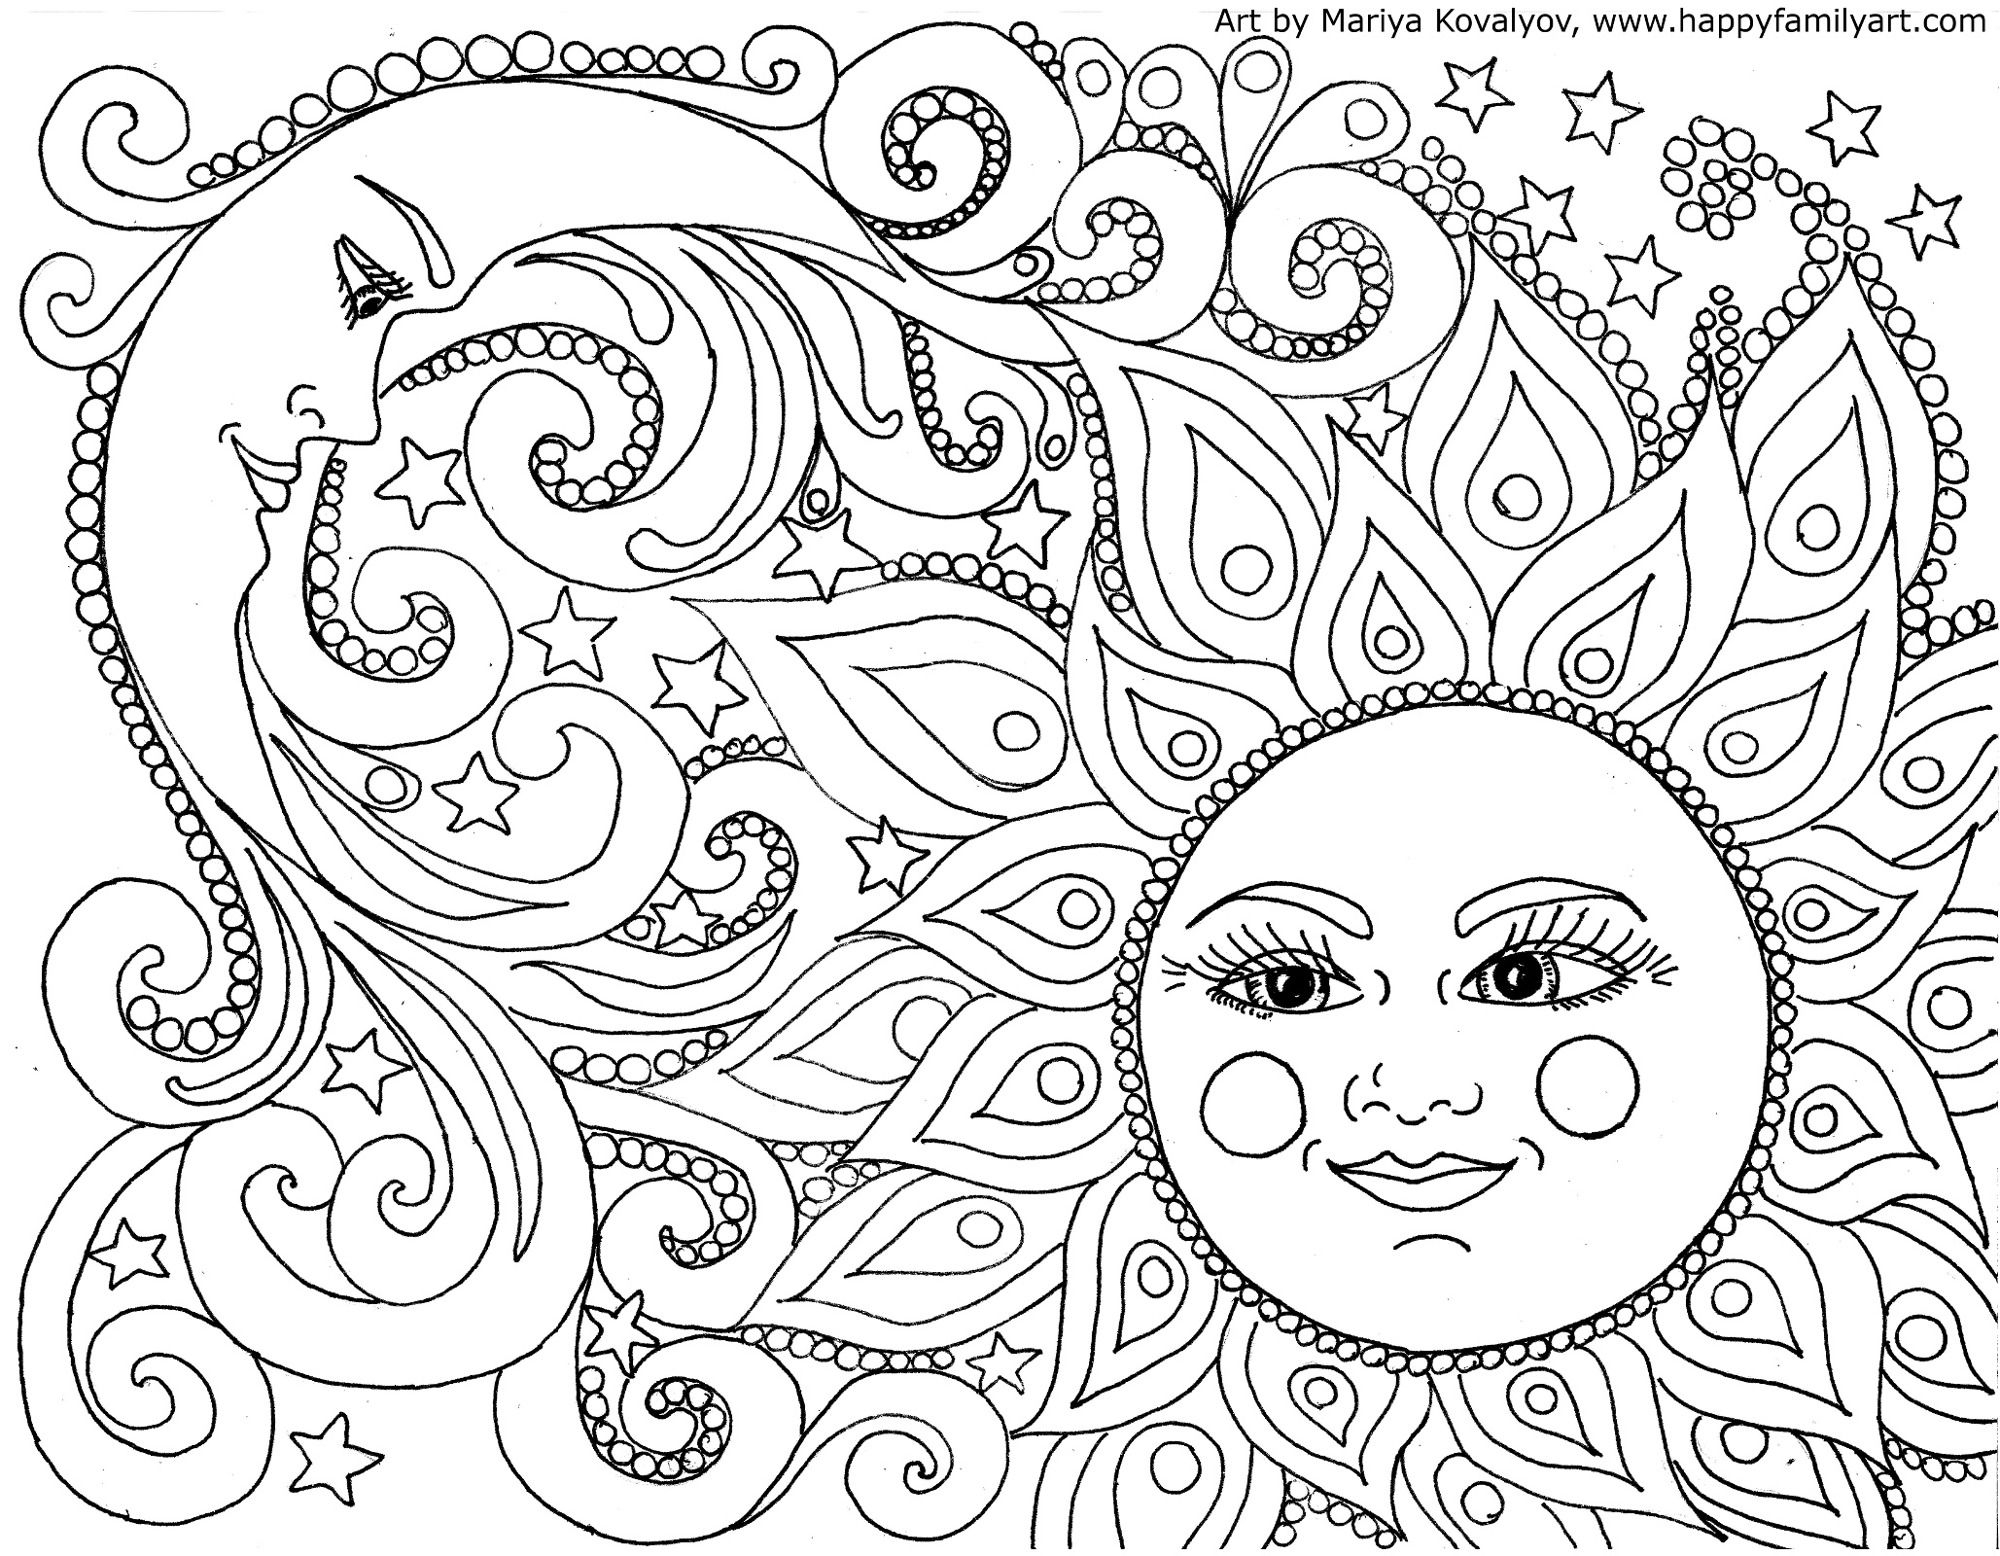 catcher coloring pages Download-I made many great fun and original coloring pages Color your heart out 13-g